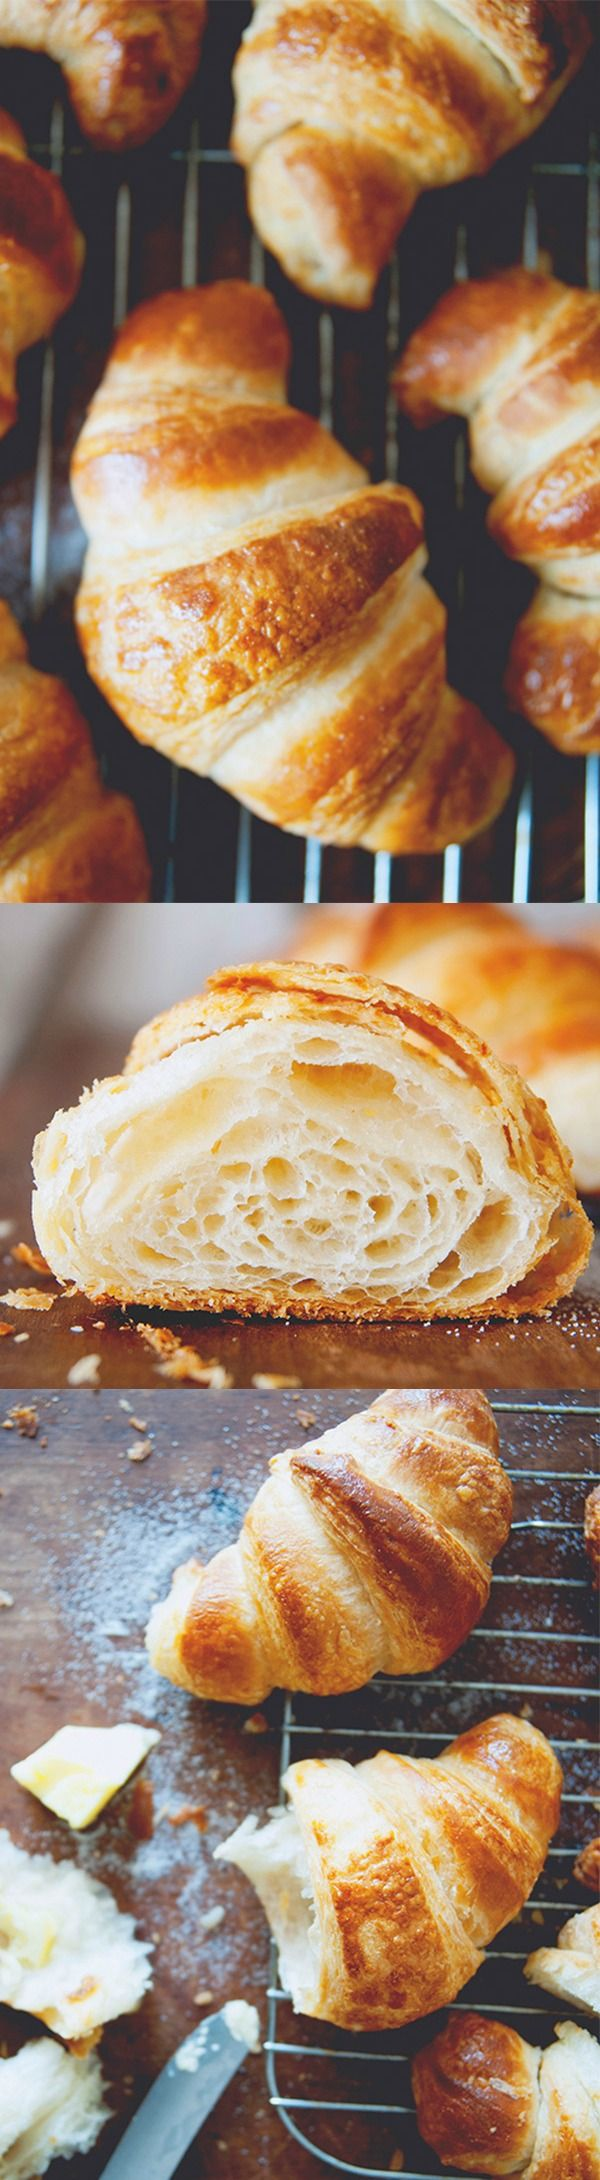 Croissants – Homemade croissants with this easy and fail-proof recipe from @kitchykitchen | rasamalaysia.com